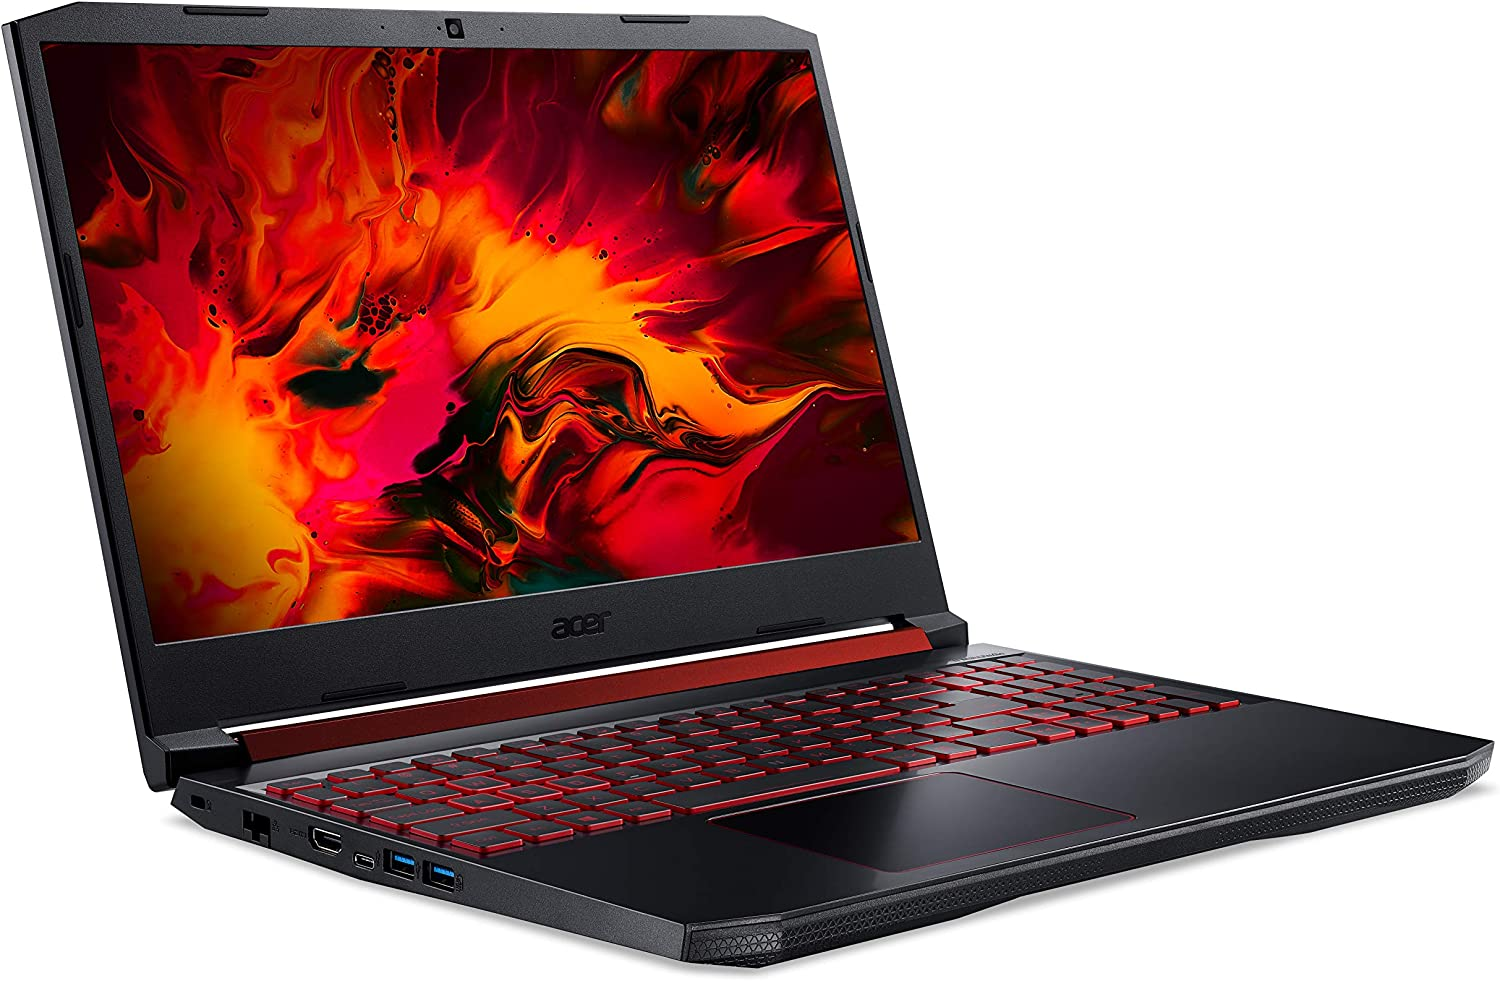 "Acer Nitro 5 AN515-54-55CQ Notebook Gaming, Intel Core i5-9300H, RAM 8 GB, 512 GB PCIe NVMe SSD, Display 15.6"" FHD IPS 60 Hz LCD, NVIDIA GeForce GTX 1650 4 GB GDDR5, Sistema Operativo LINUX"